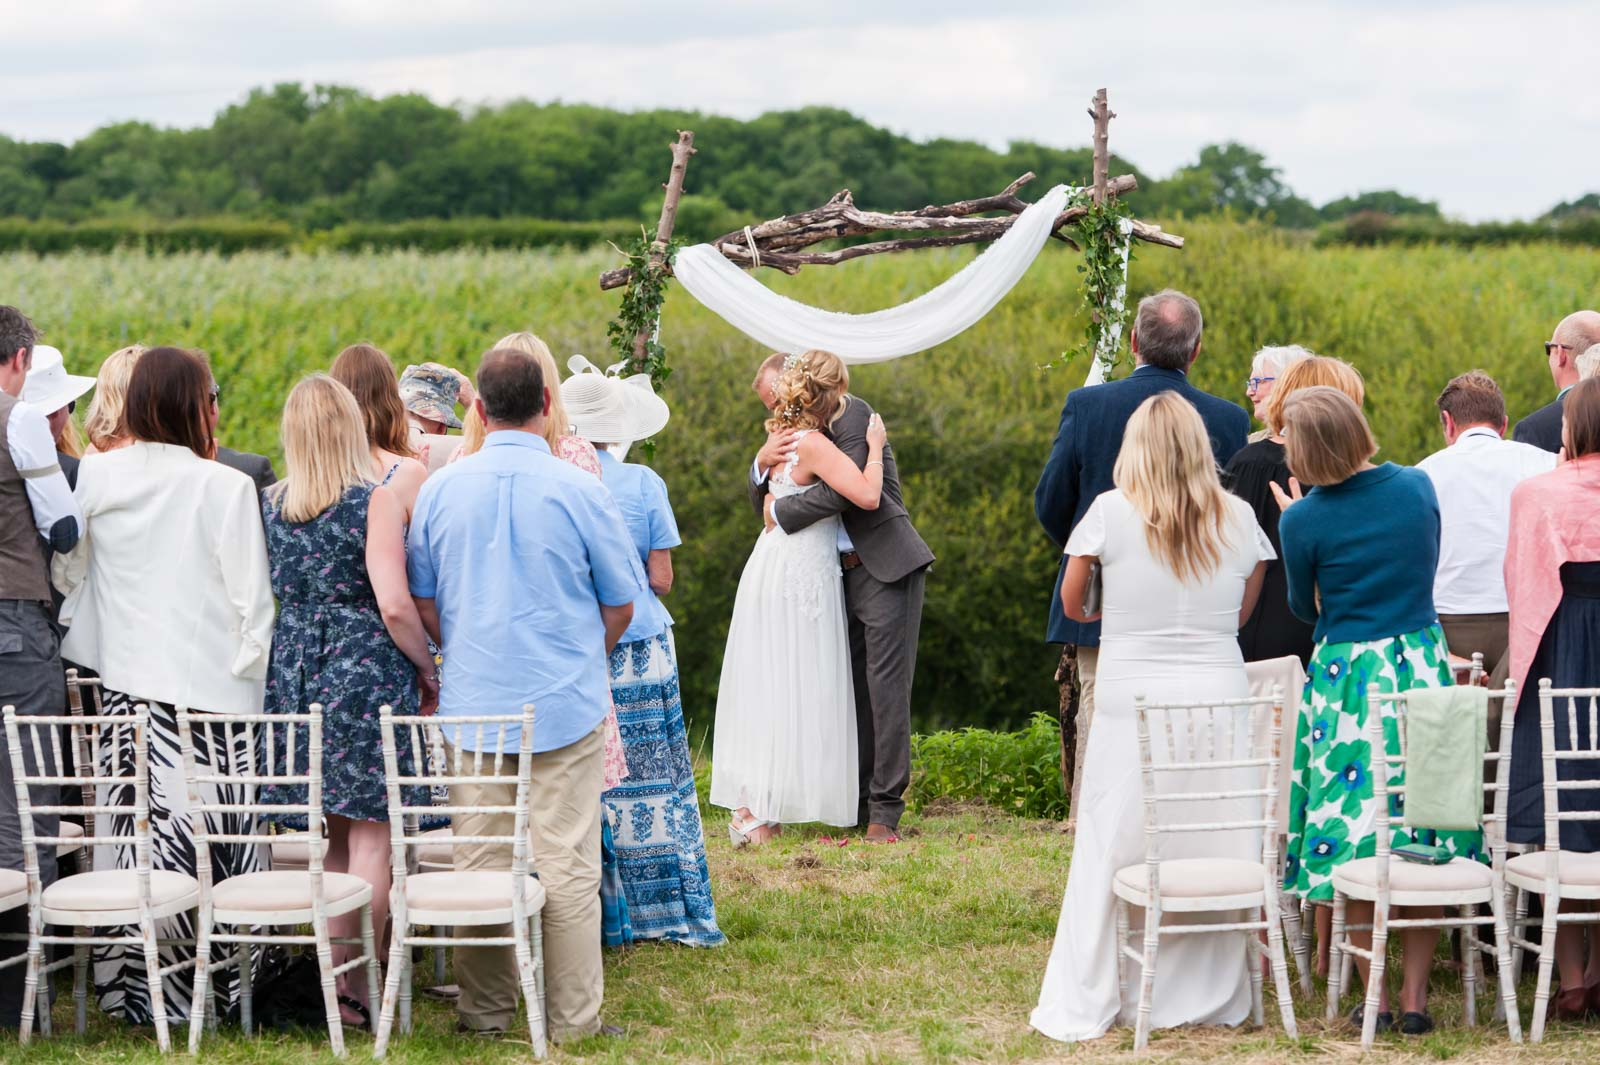 Couple embracing at outdoor wedding